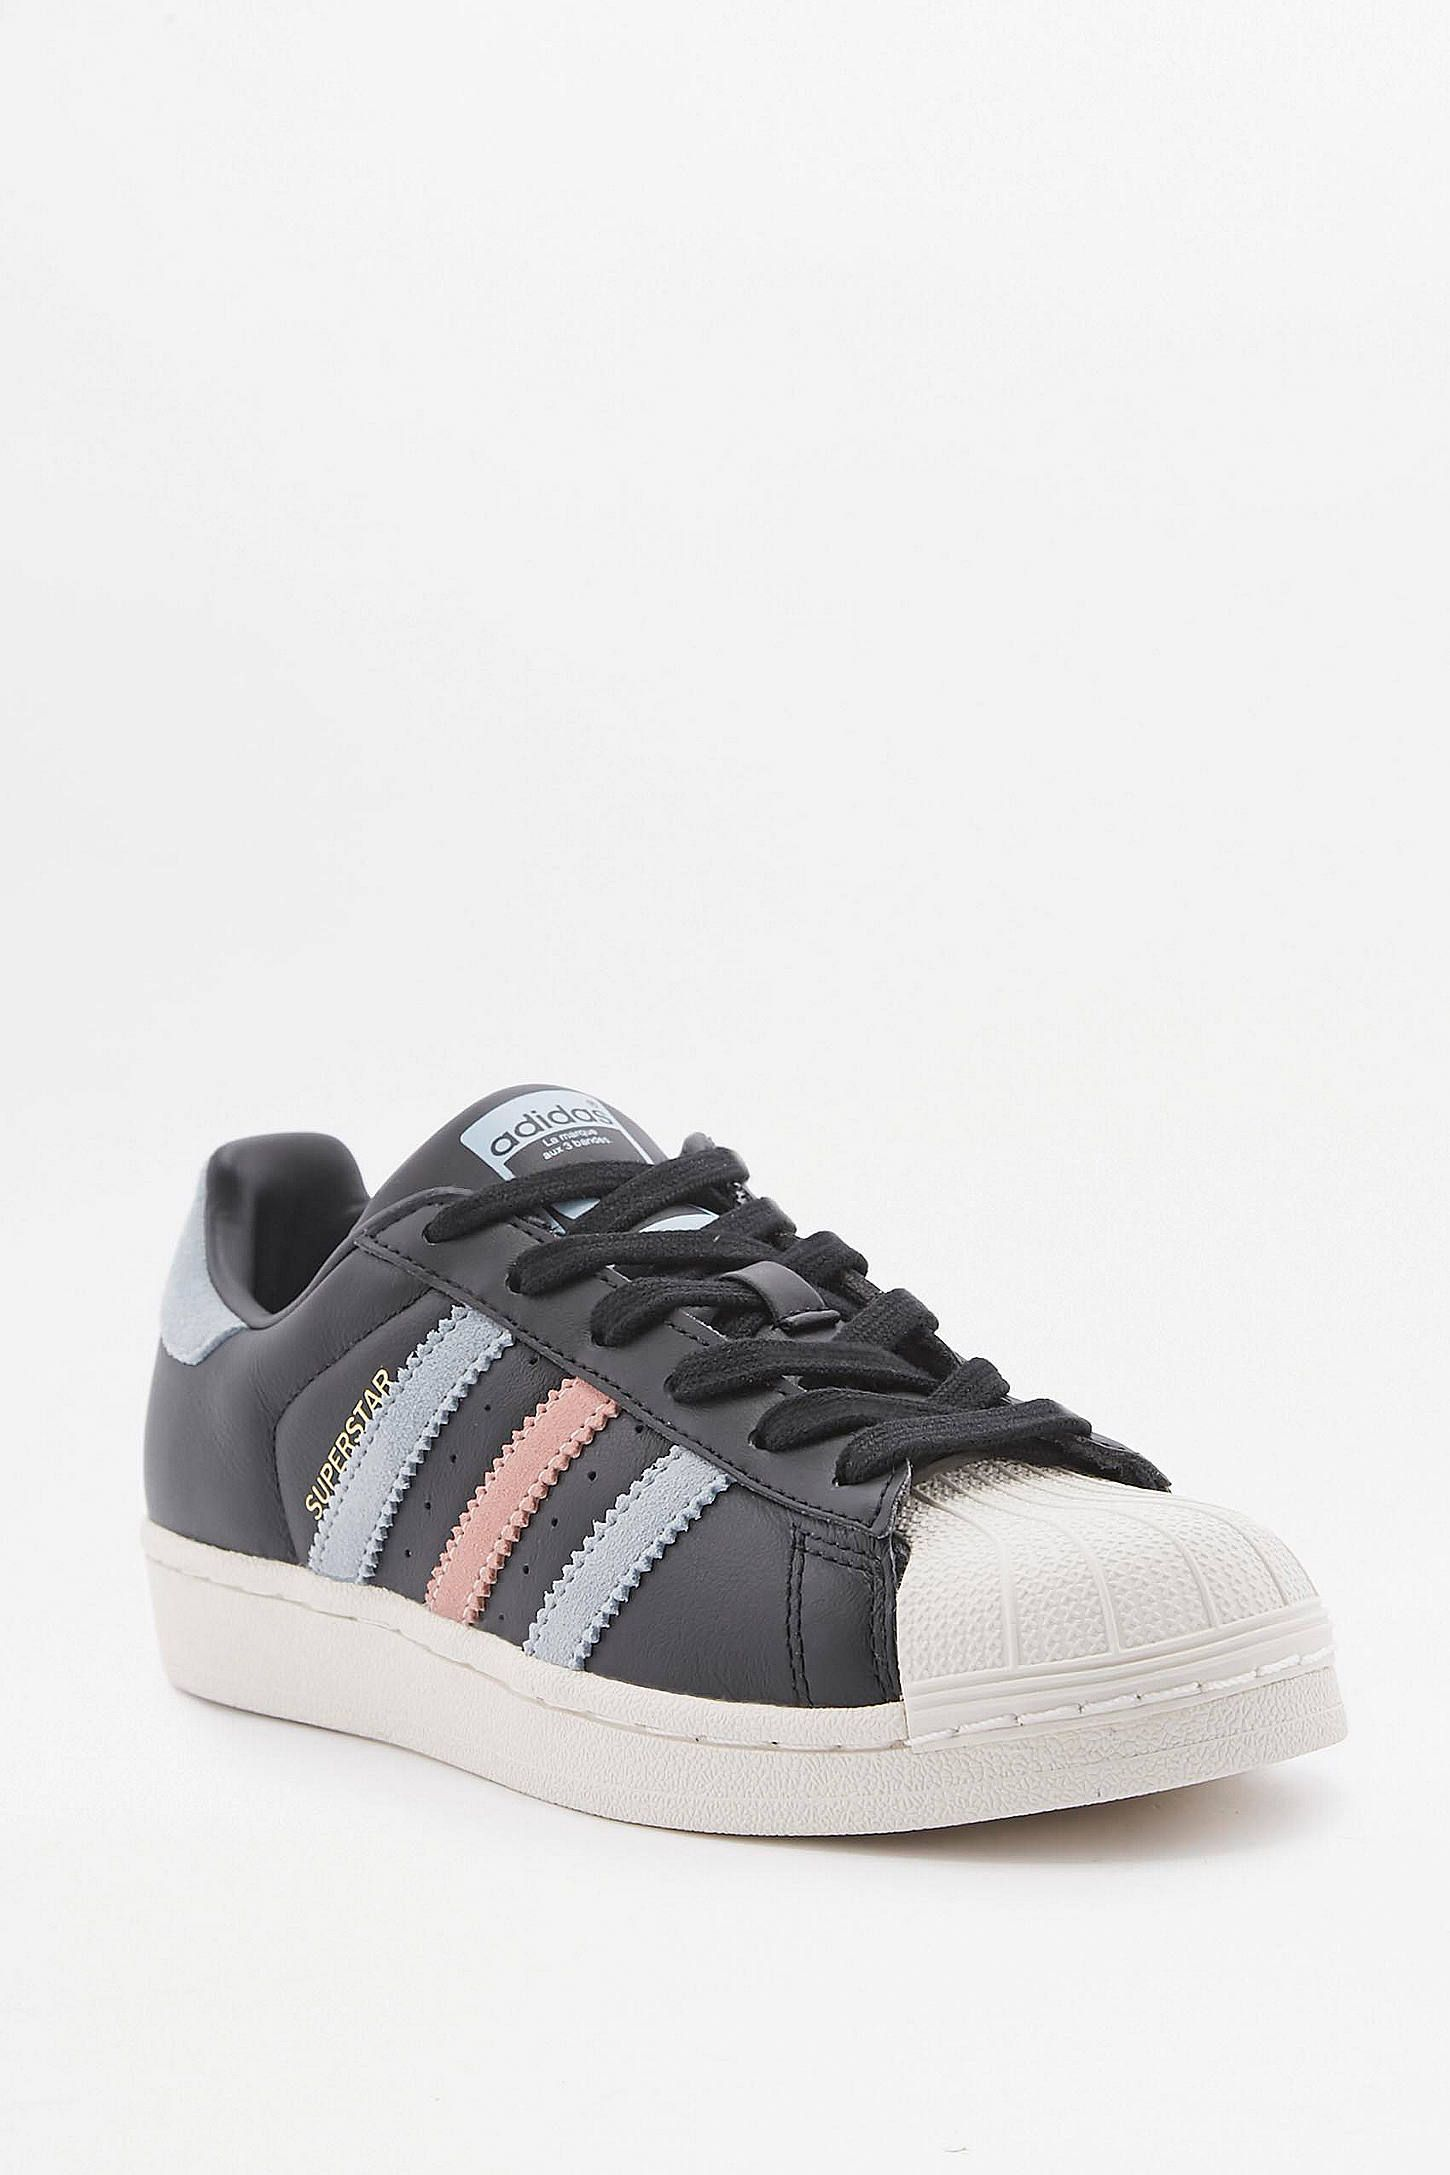 adidas originals superstar ii sneaker white black, ADIDAS W